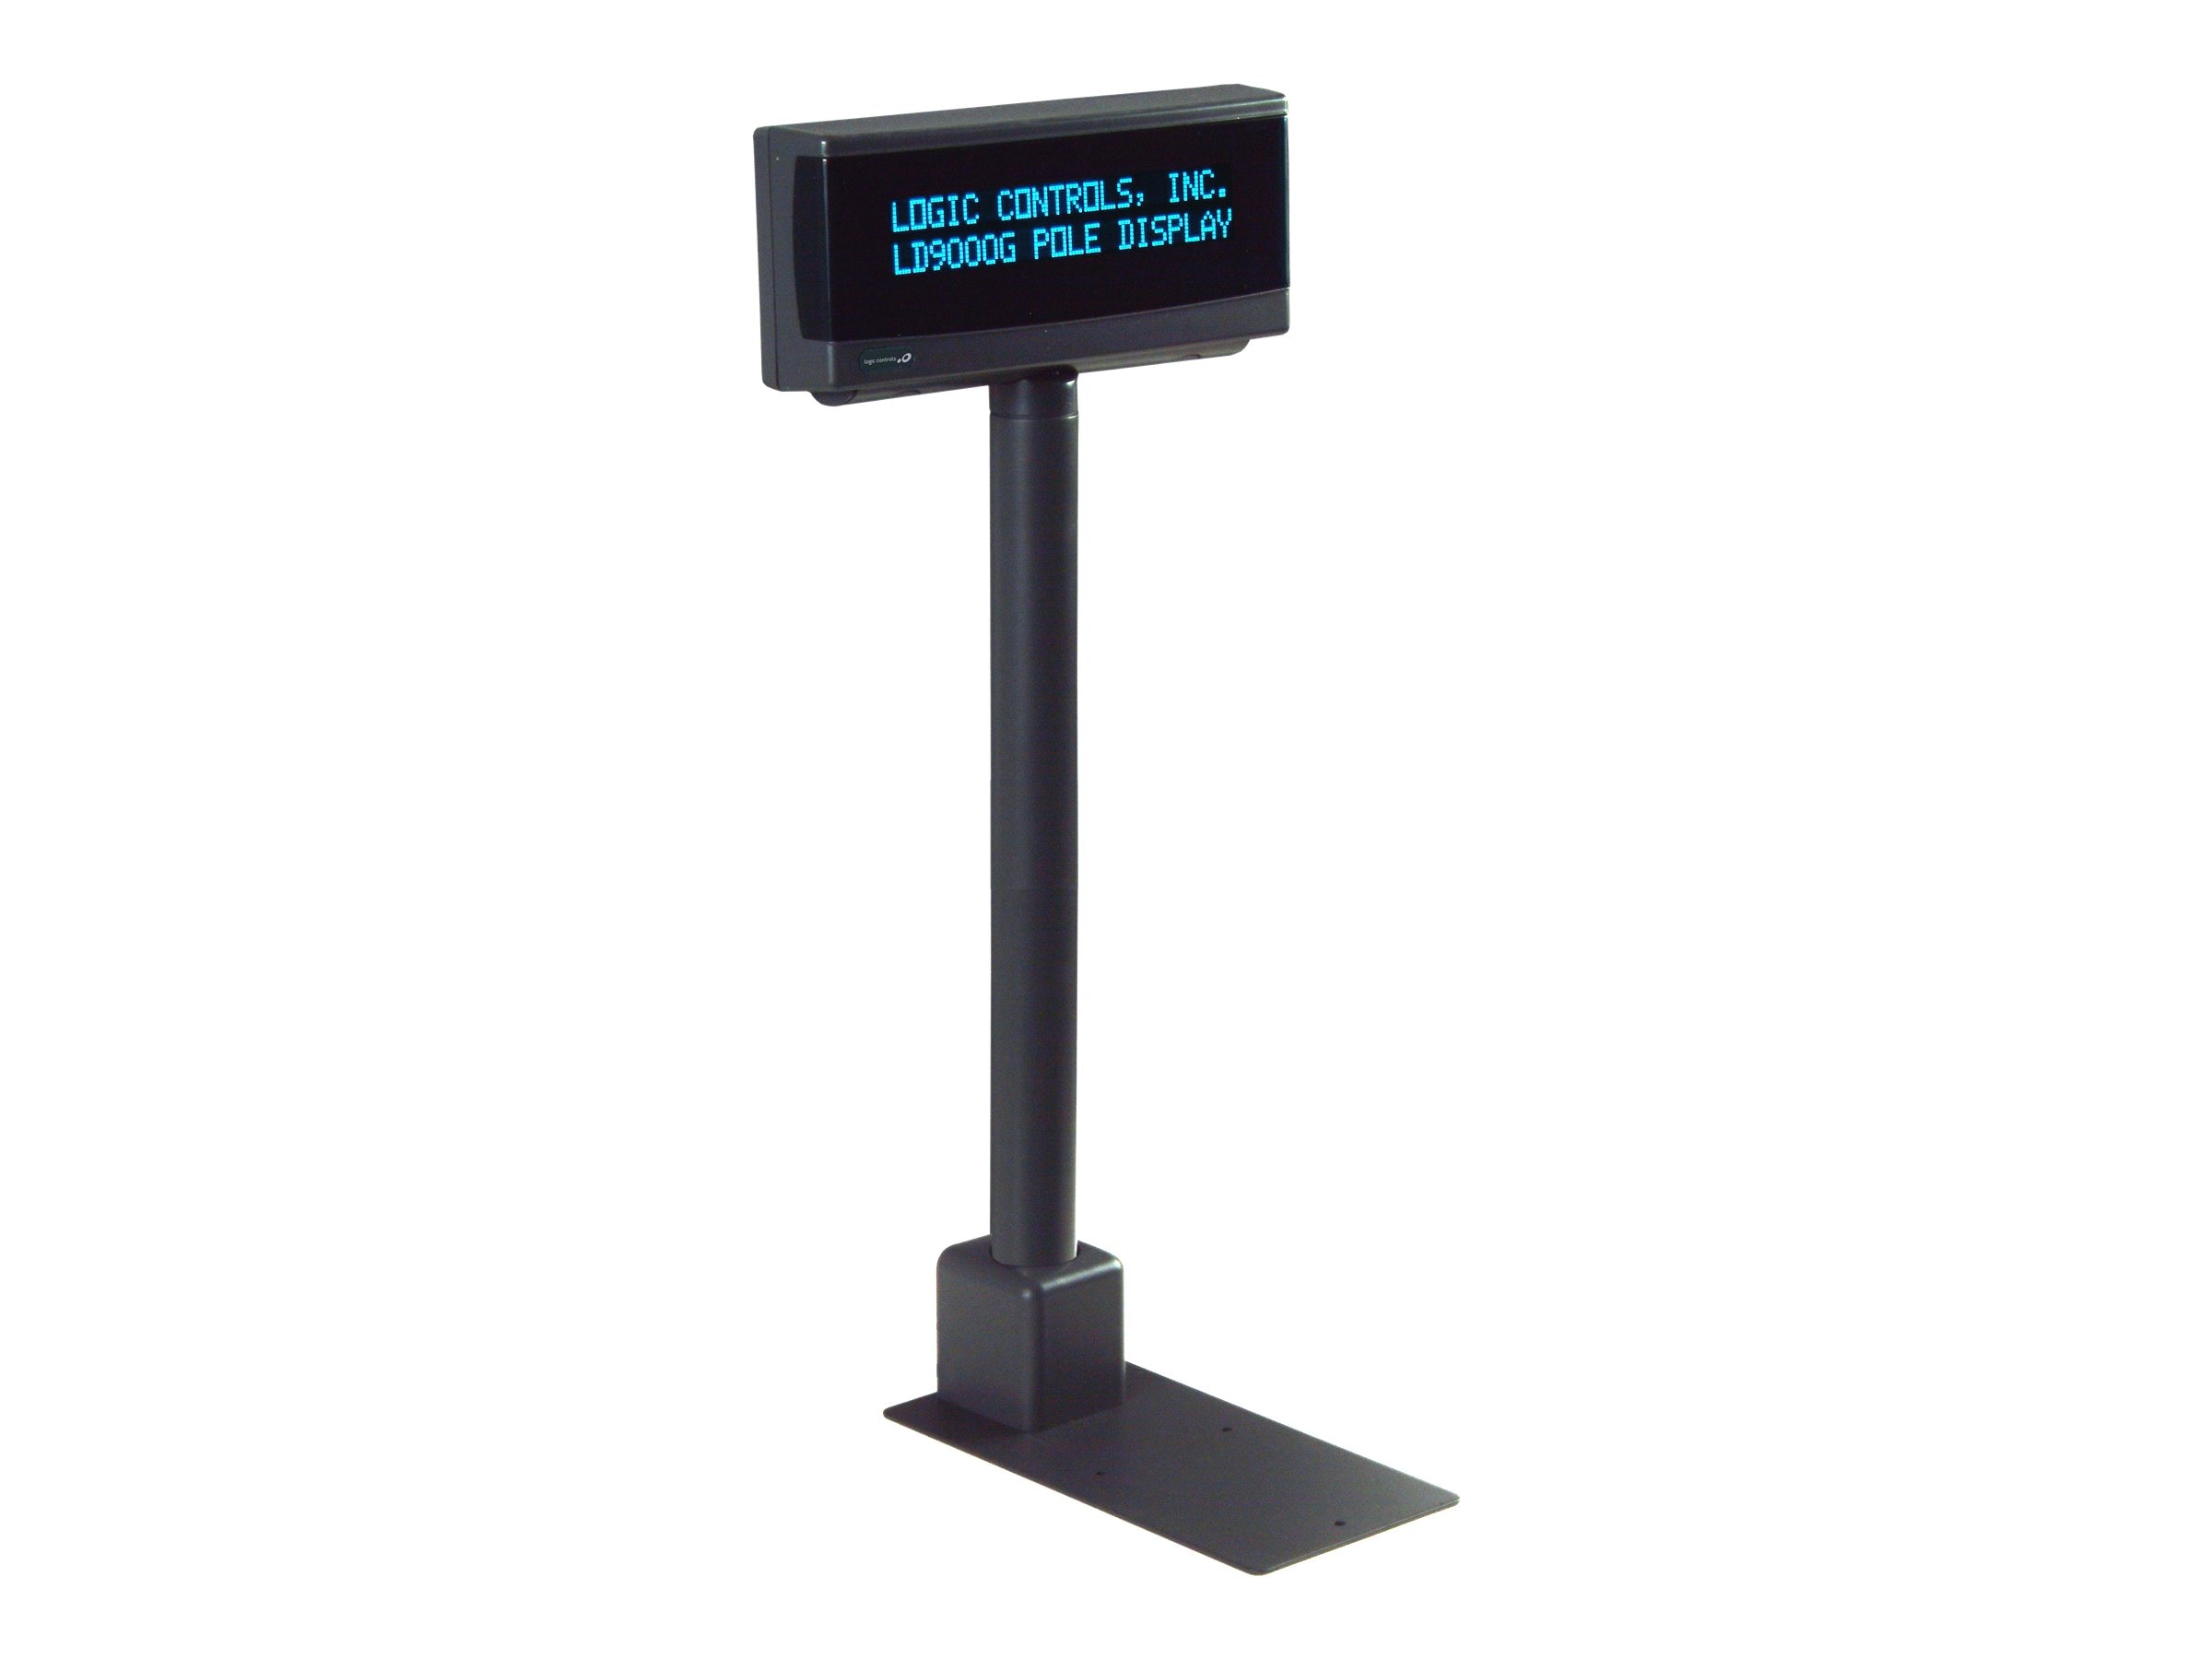 Logic Controls Pole Display, 9.5mm, 2 x 20, RS-232 Universal, External Power Supply, Gray